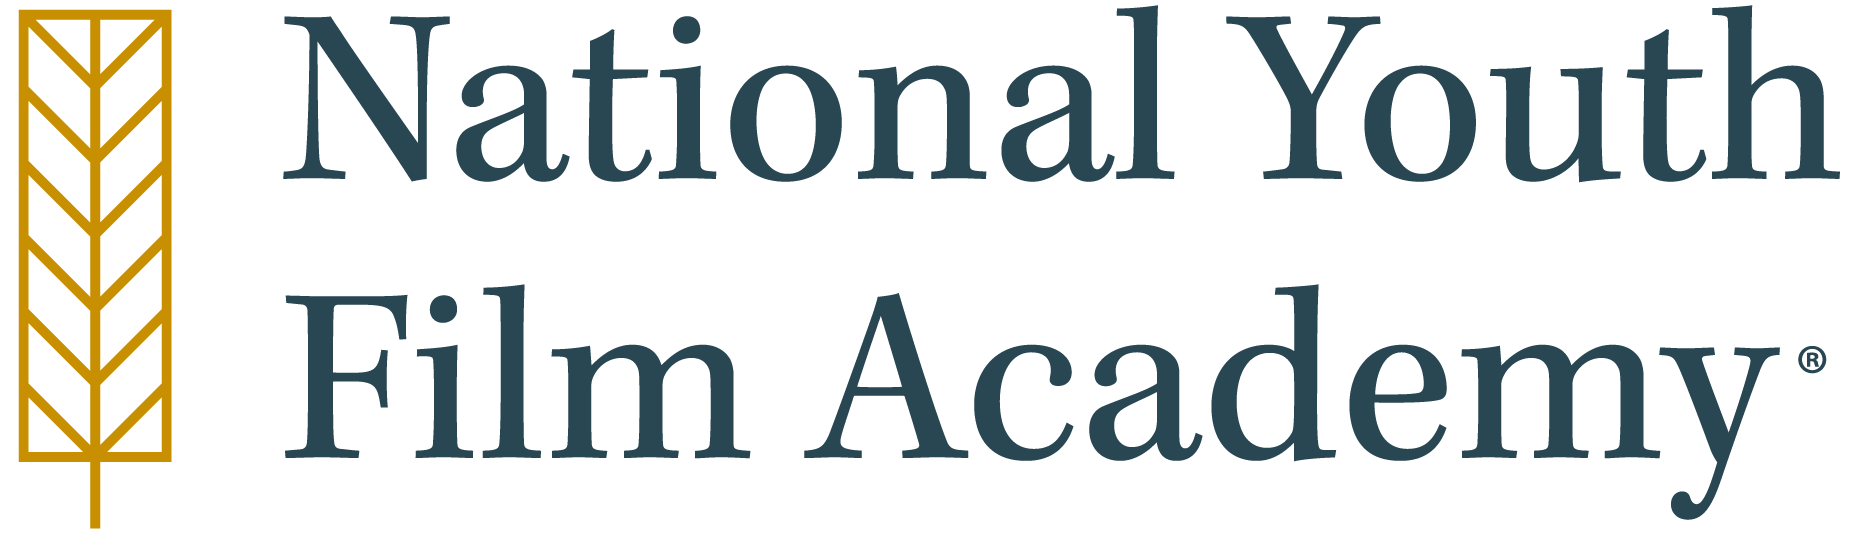 National Youth Film Academy